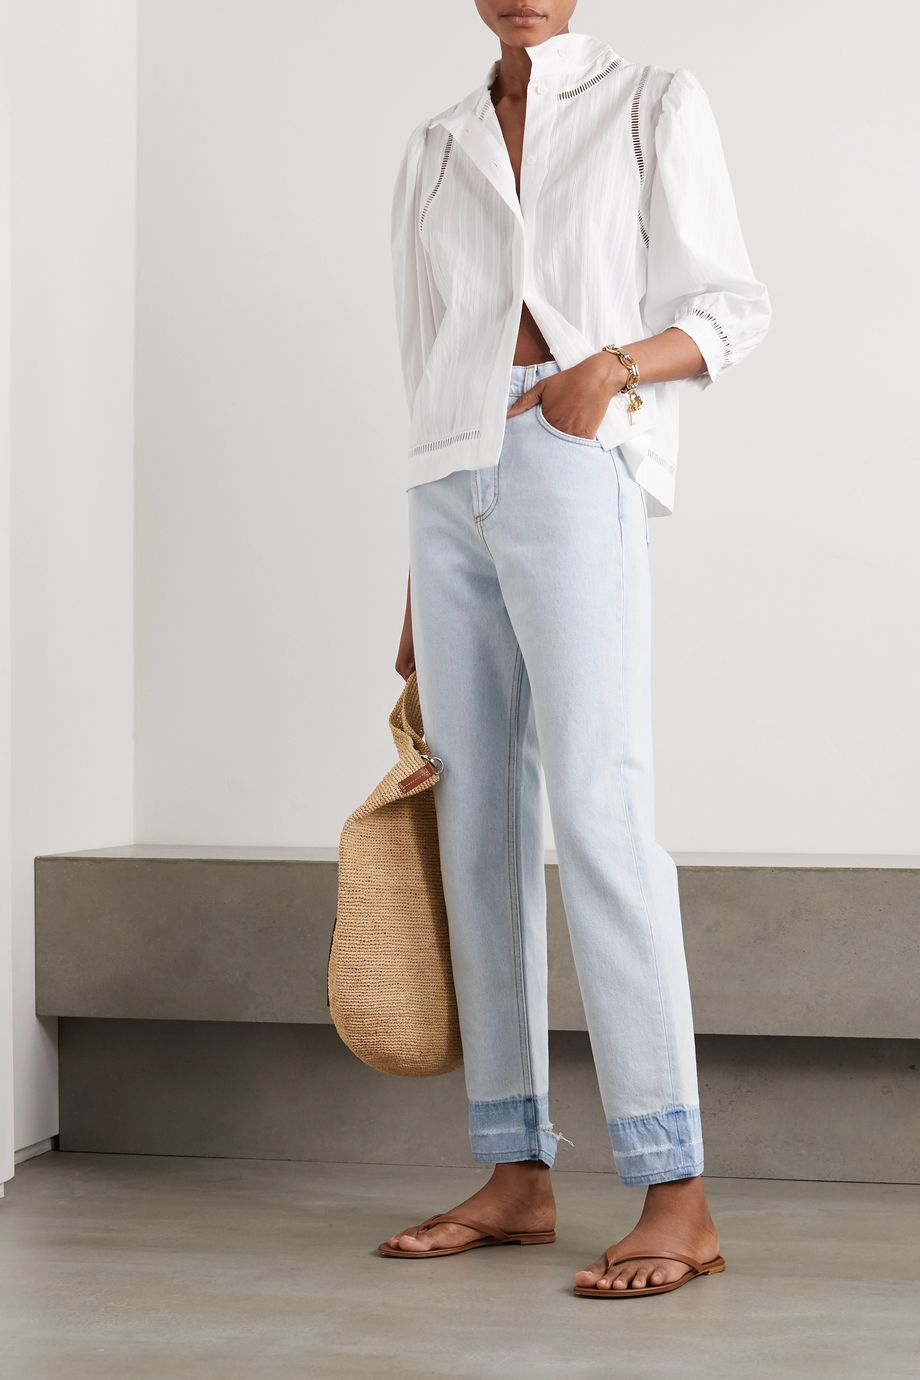 Loewe Frayed high-rise straight-leg jeans